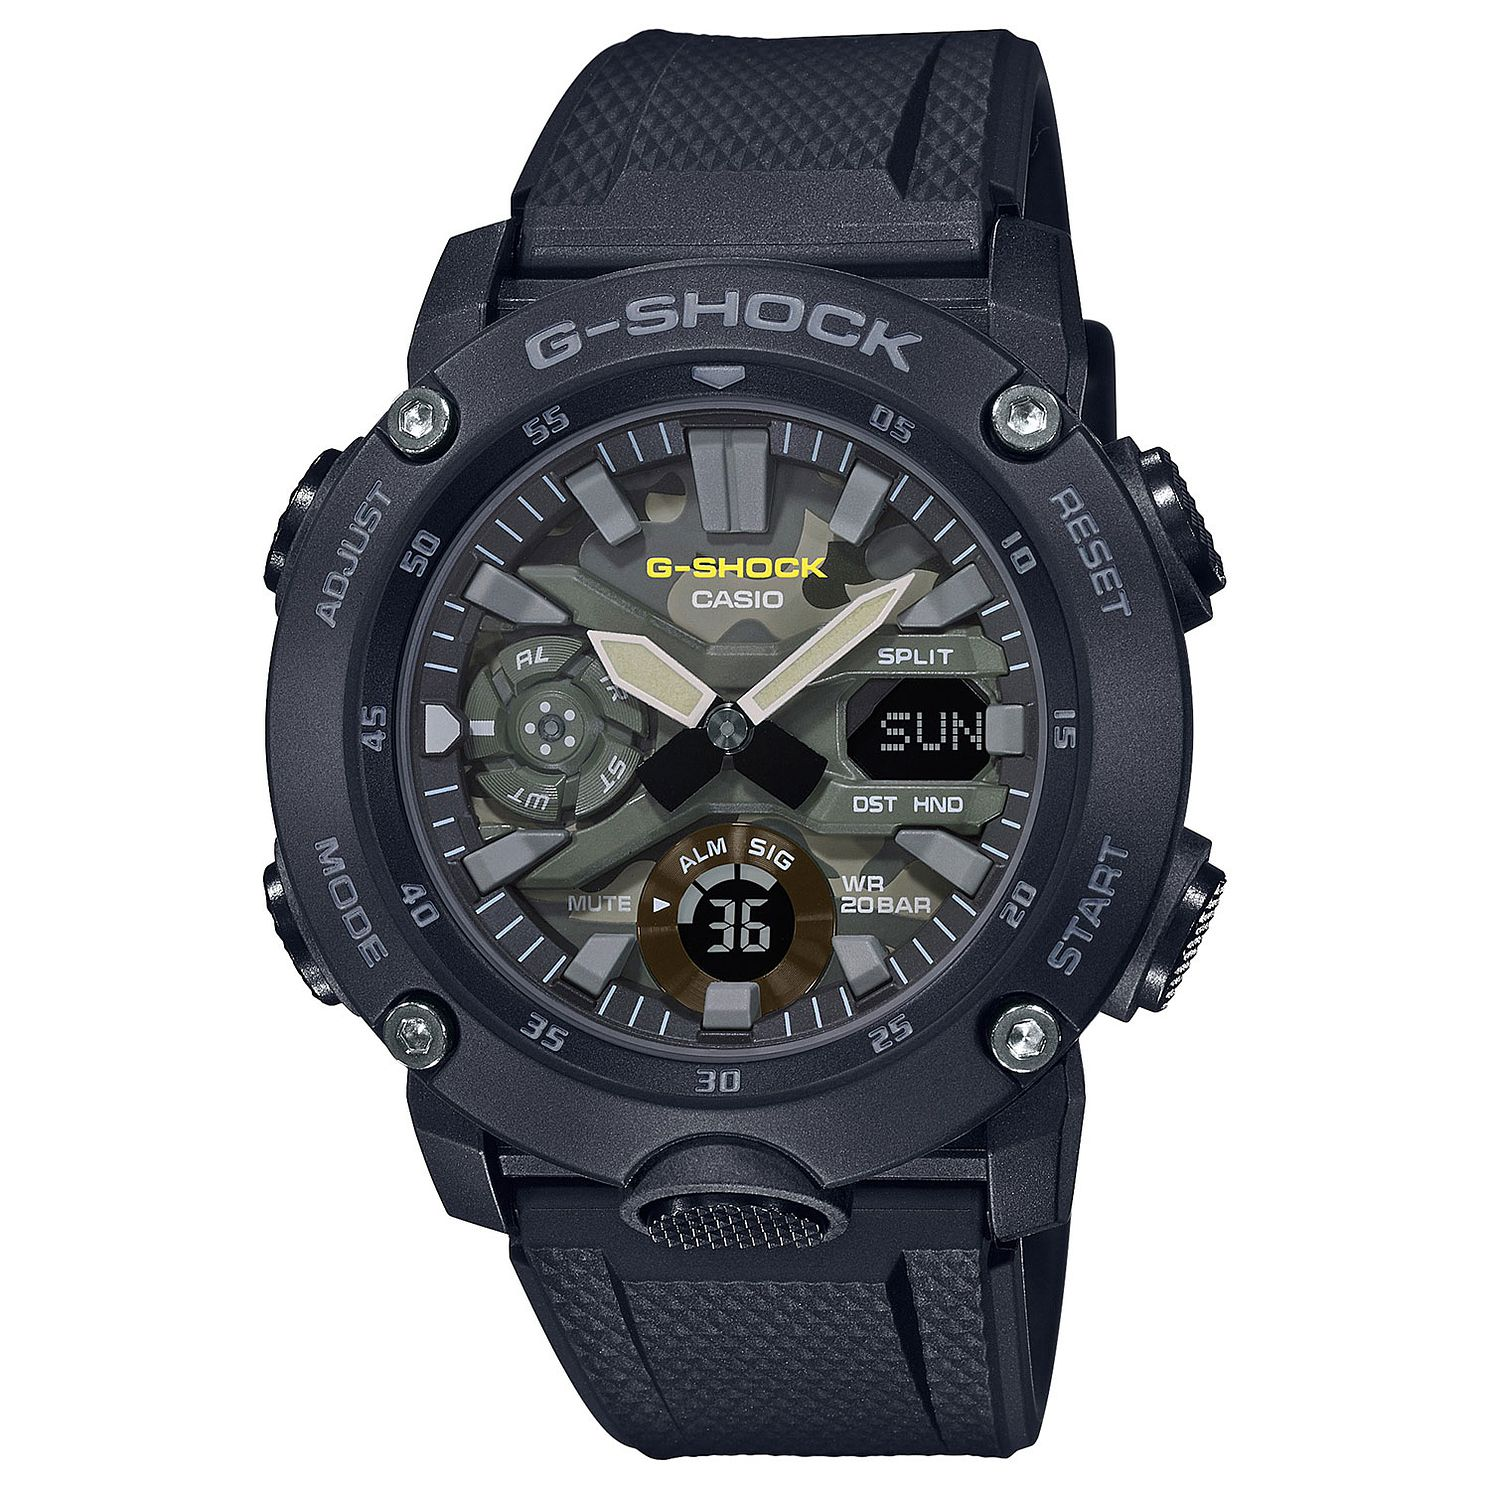 Casio G-Shock Men's Black Resin Strap Watch - Product number 4938305